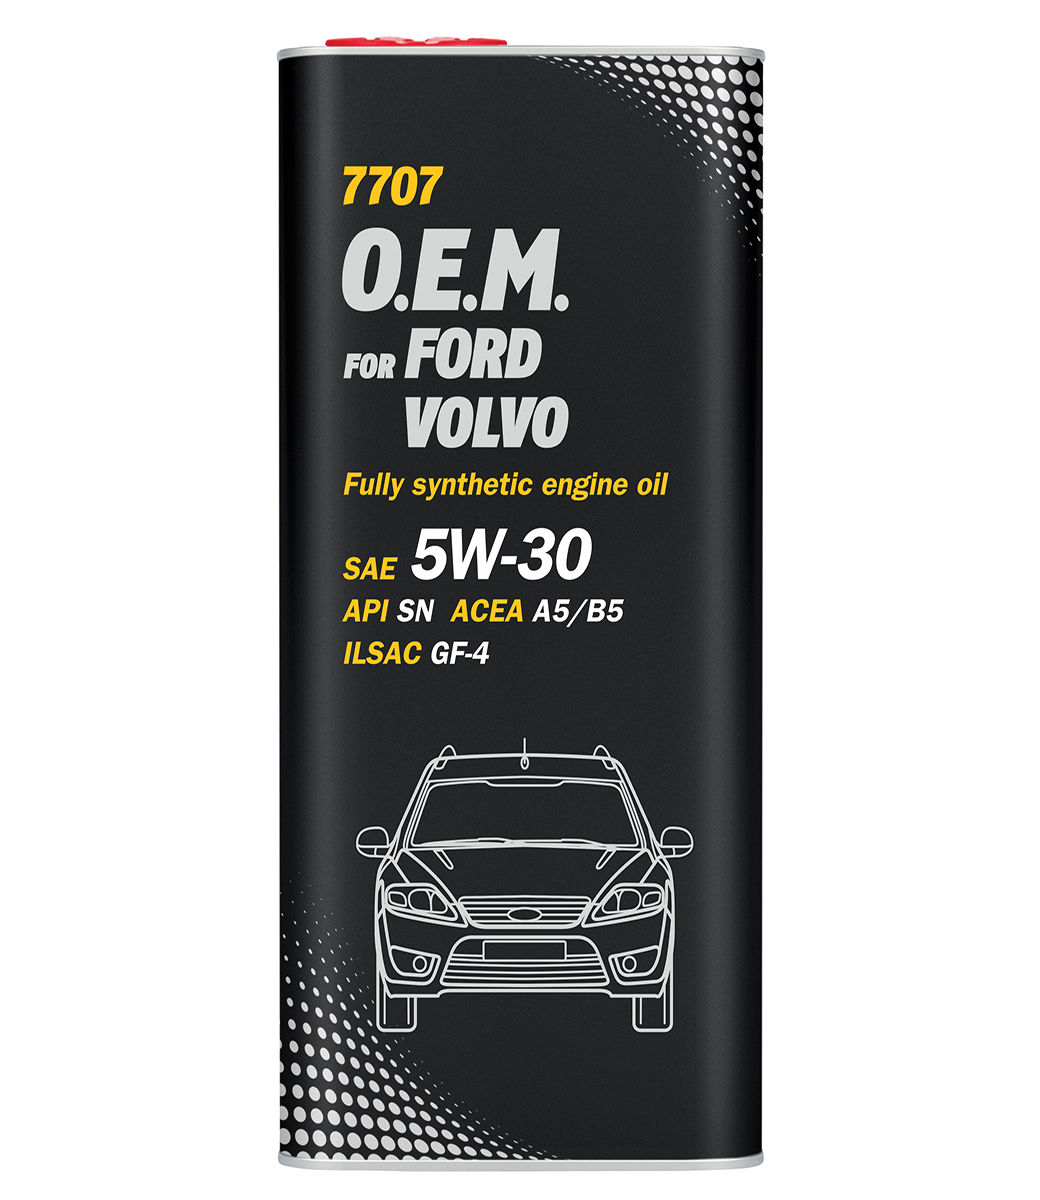 O.E.M. for Ford Volvo 5W-30